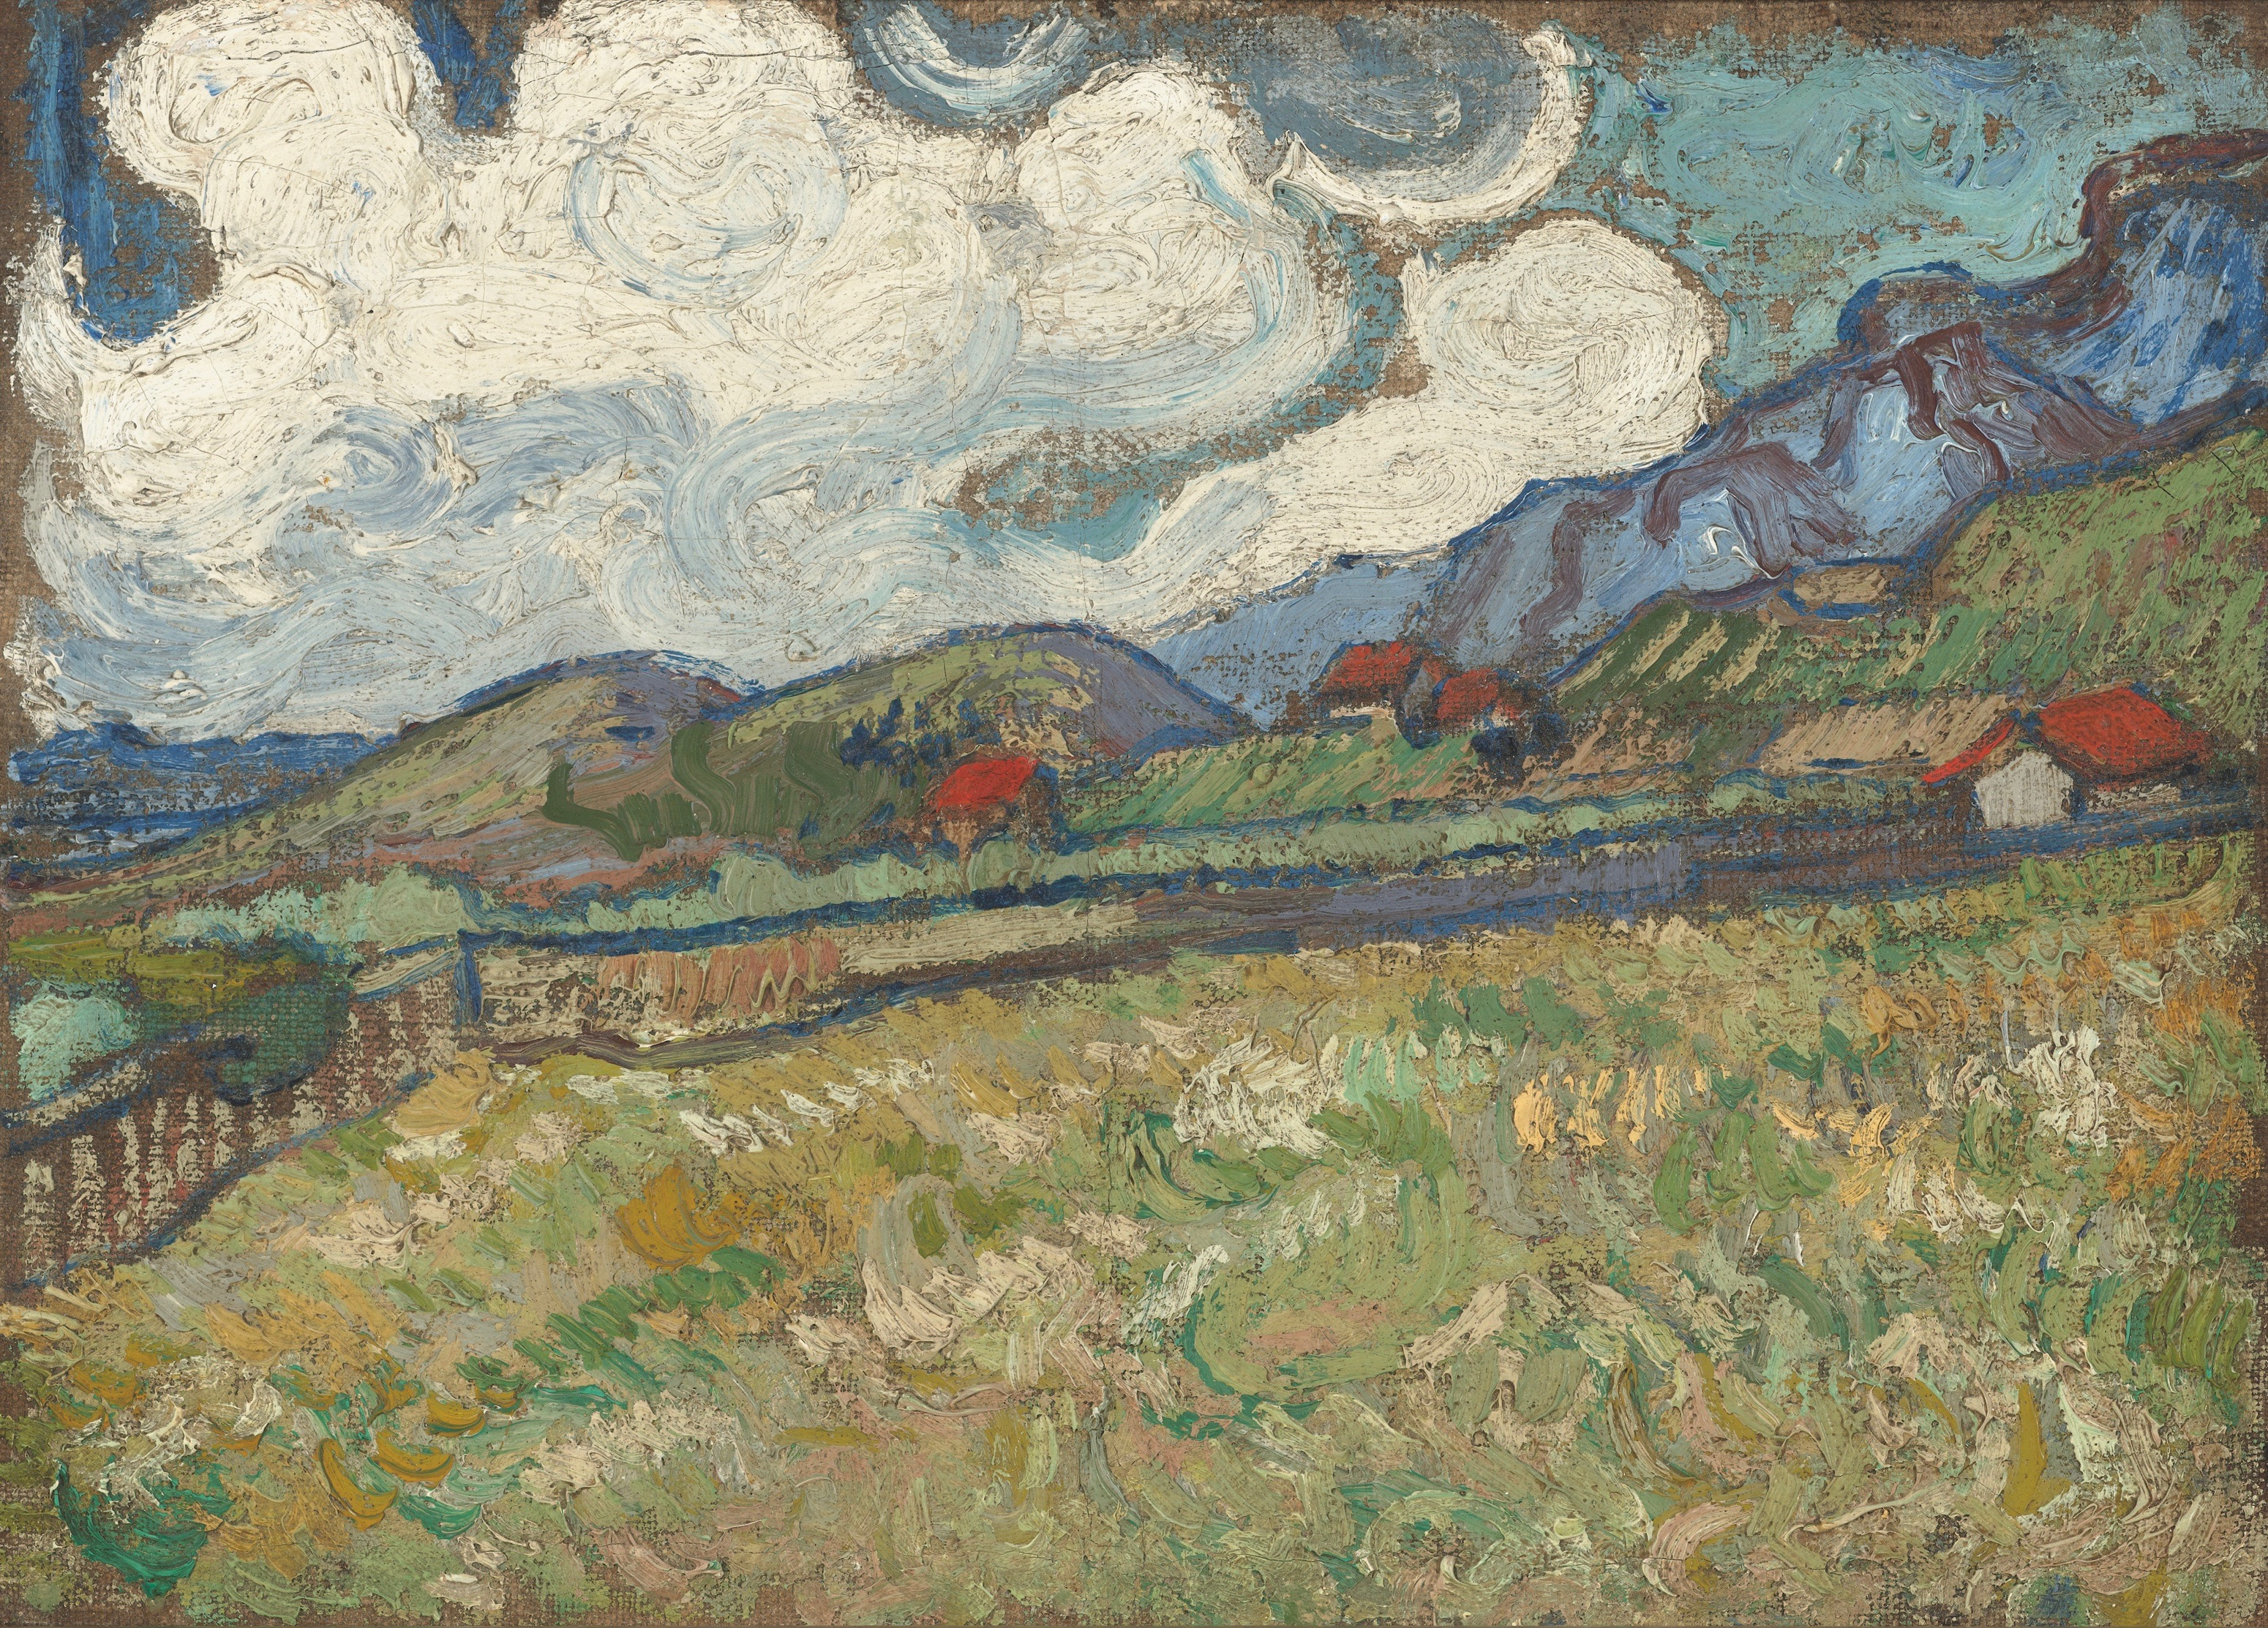 Painted during Van Gogh's final great surge of work, 'The Wheat Field behind St. Paul's Hospital, St. Rémy' stirs the senses.